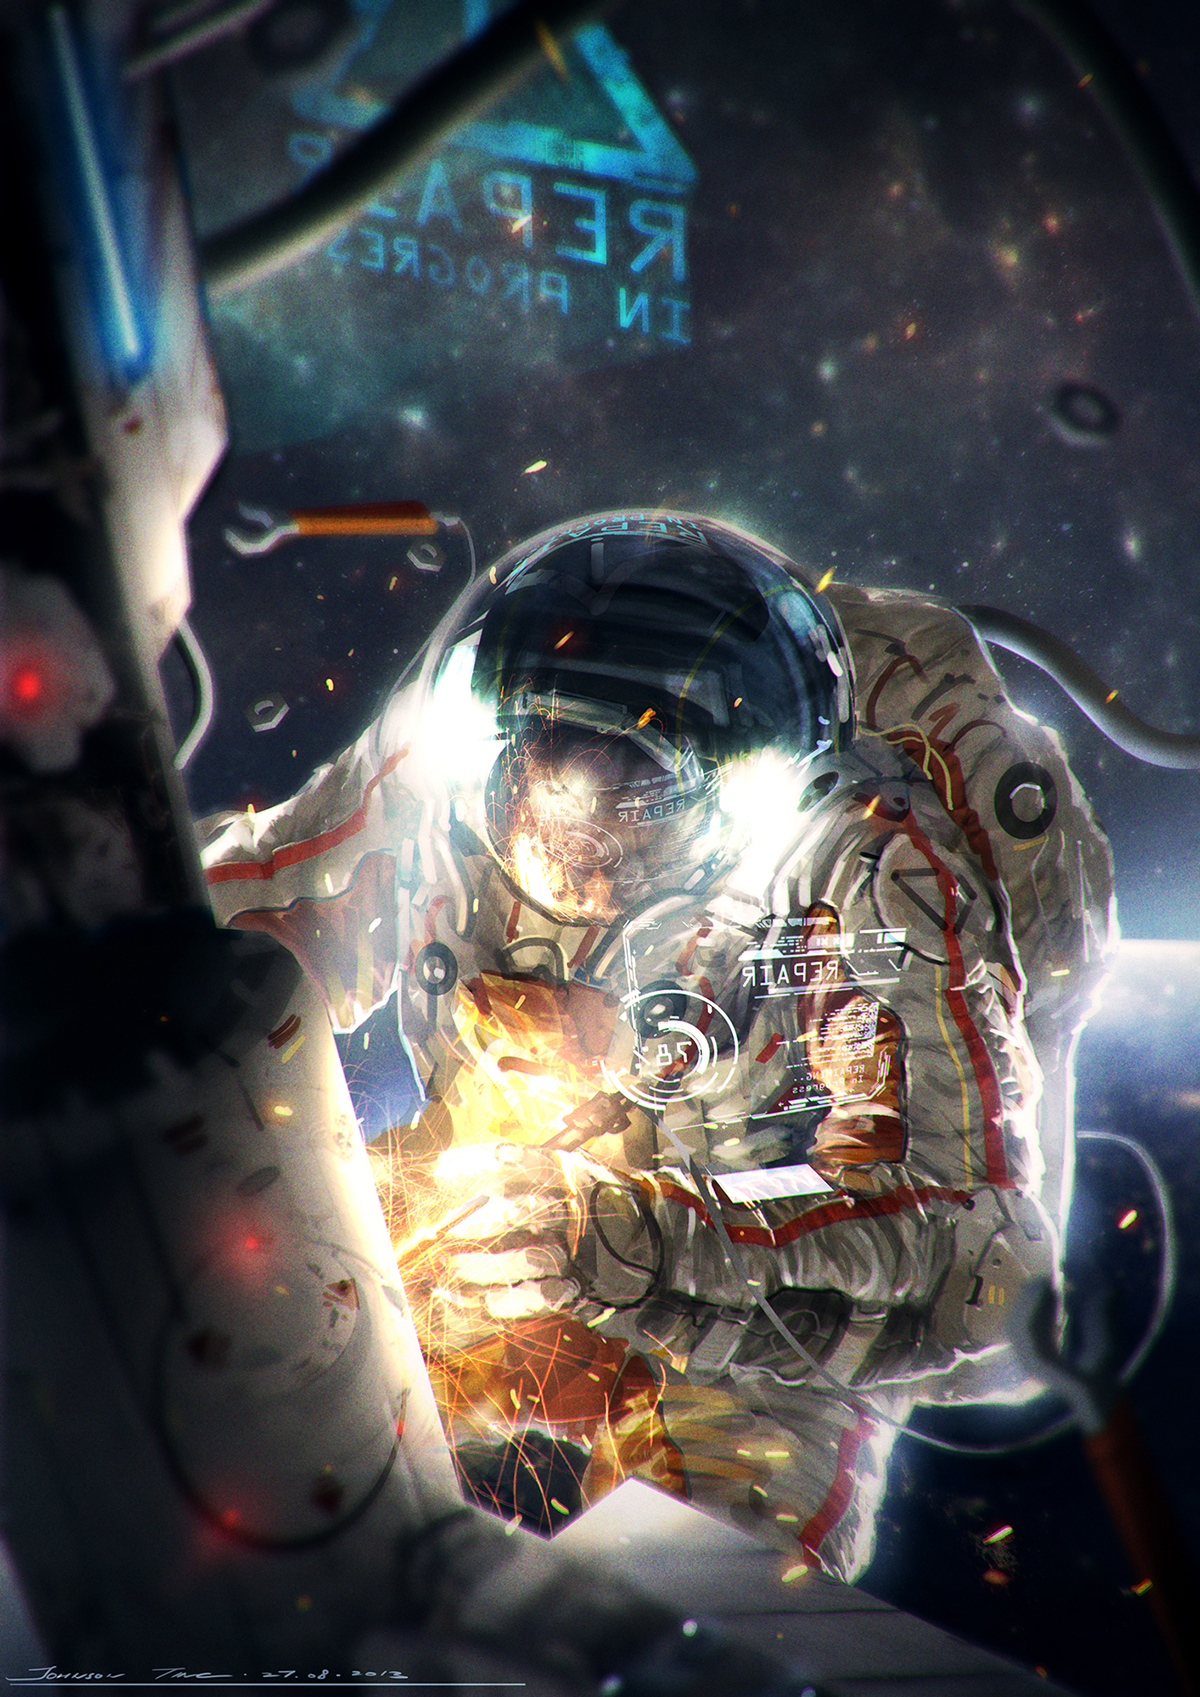 How to Illustrate an Astronaut in Photoshop - Tutorials ...